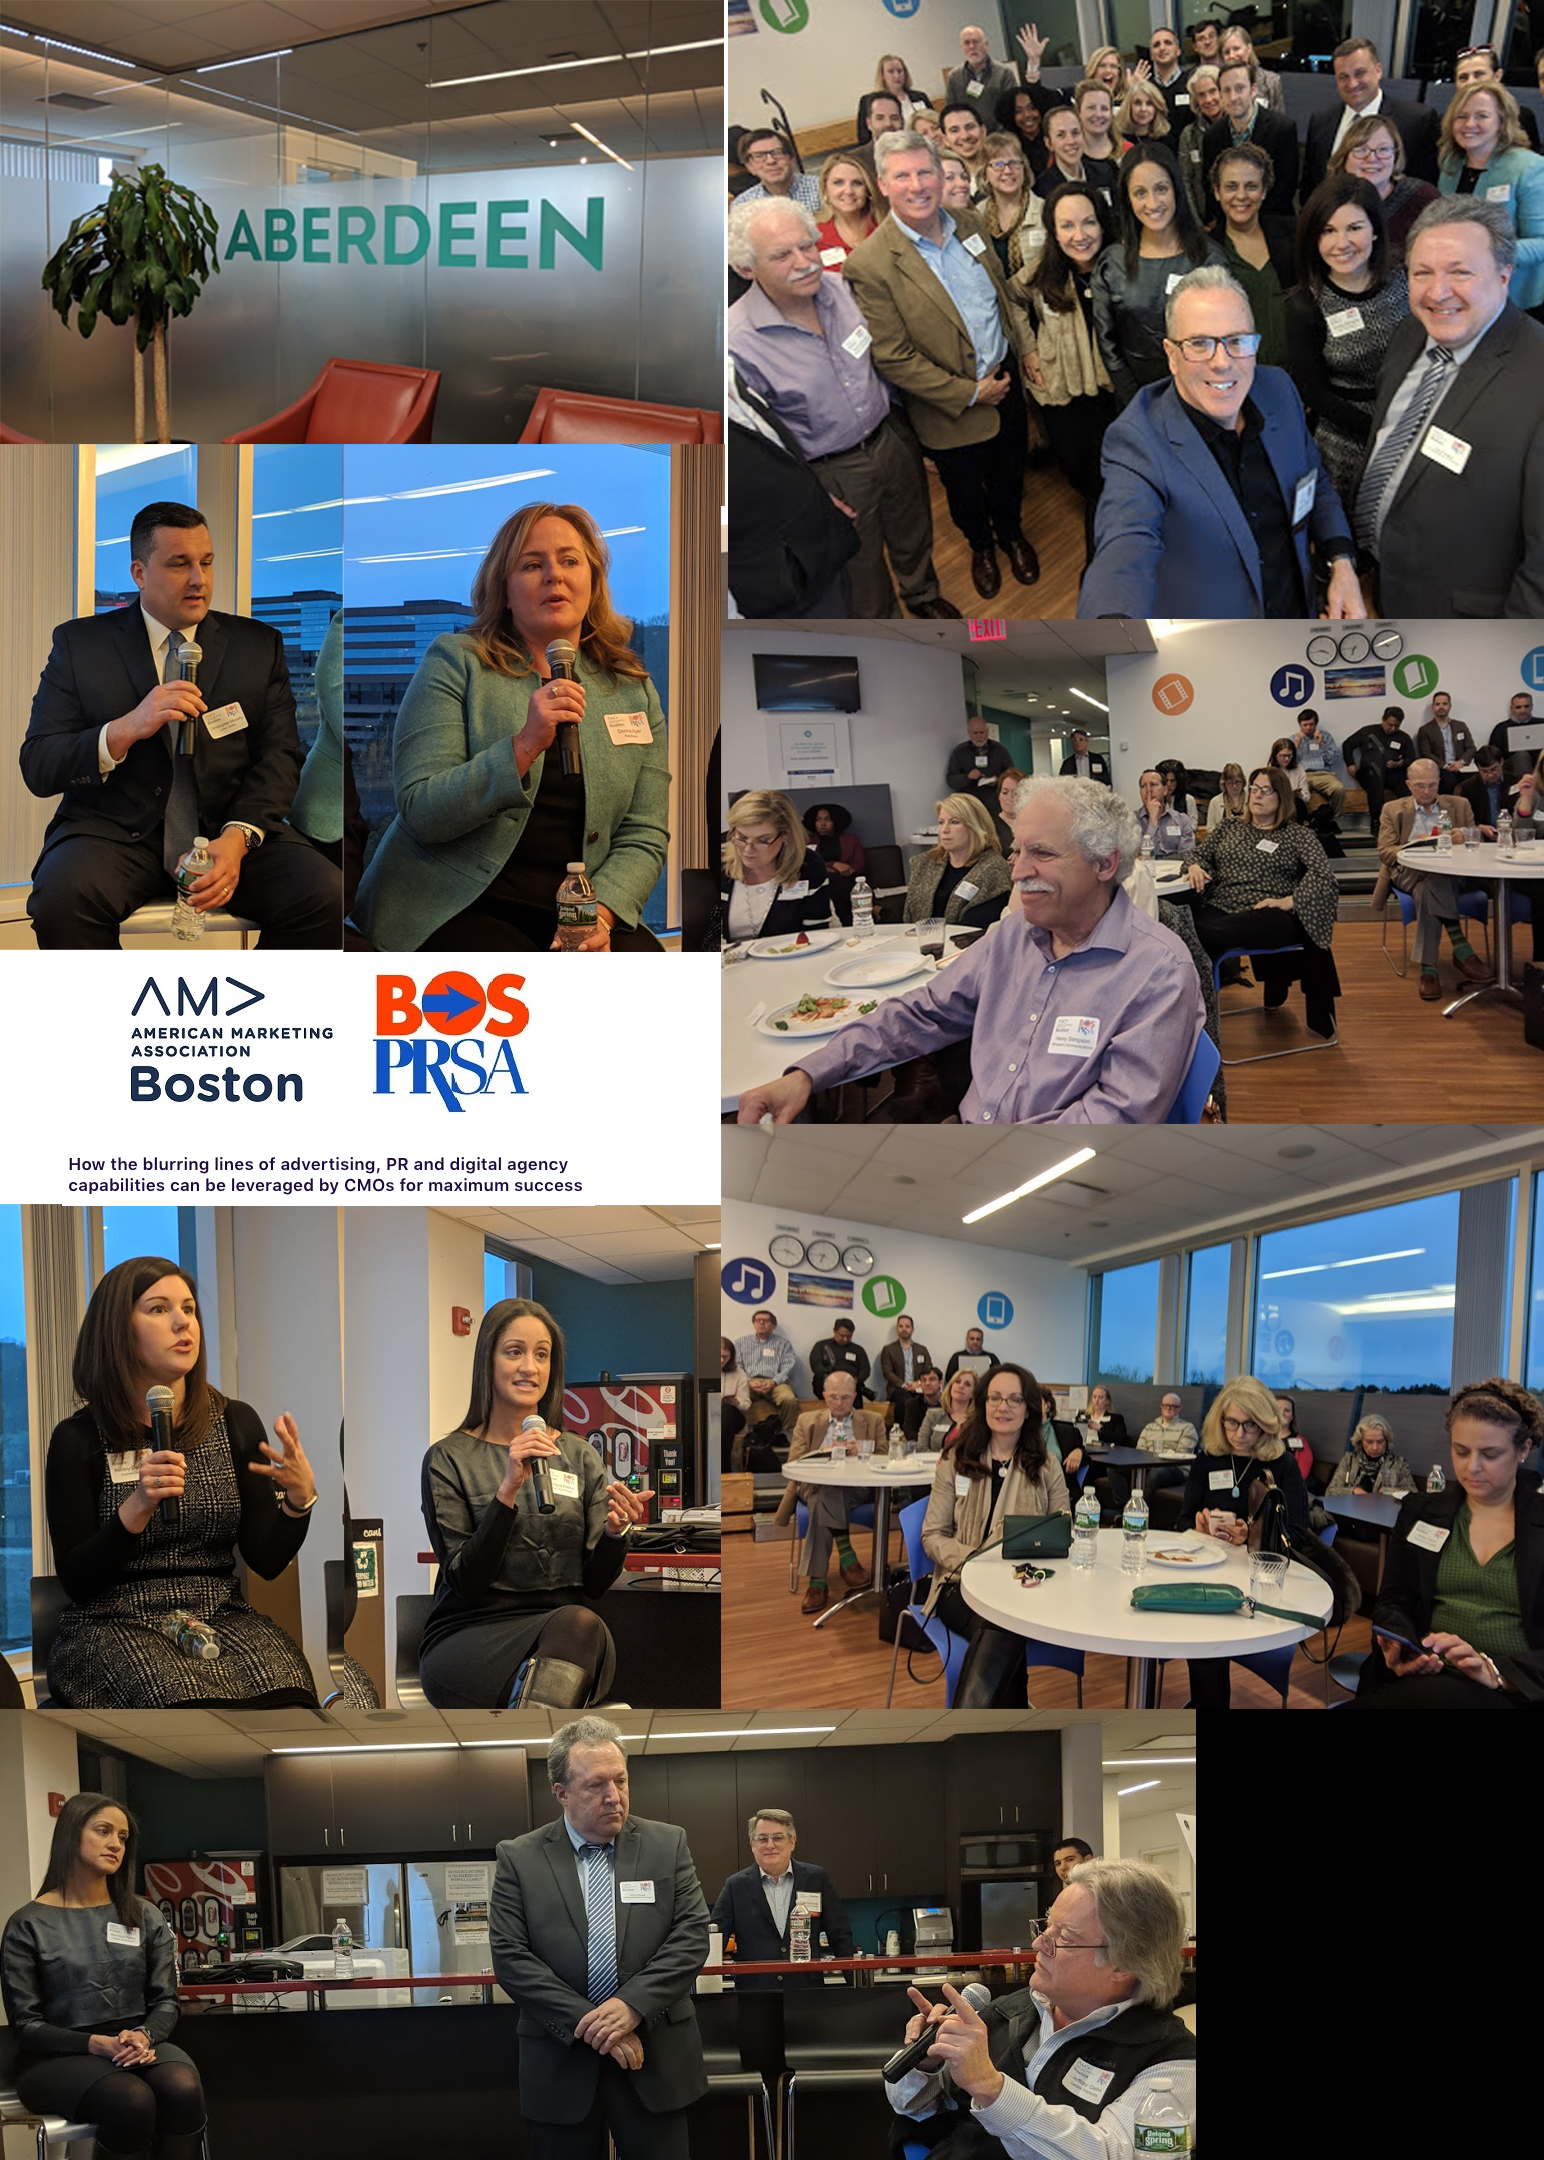 - ABOVE: JIM PANAGAS MODERATING A PANEL DISCUSSION FOR AMA BOSTON AND PRSA BOSTON. THE EVENT TOOK PLACE IN MARCH 2019 AND FOCUSED ON THE CHANGING RELATIONSHIP BETWEEN CMO'S AND DIGITAL MARKETING AGENCIES. BELOW: JIM PANAGAS BEING INTERVIEWED ON THE CMS-CONNECTED WEB-BASED TV SHOW.